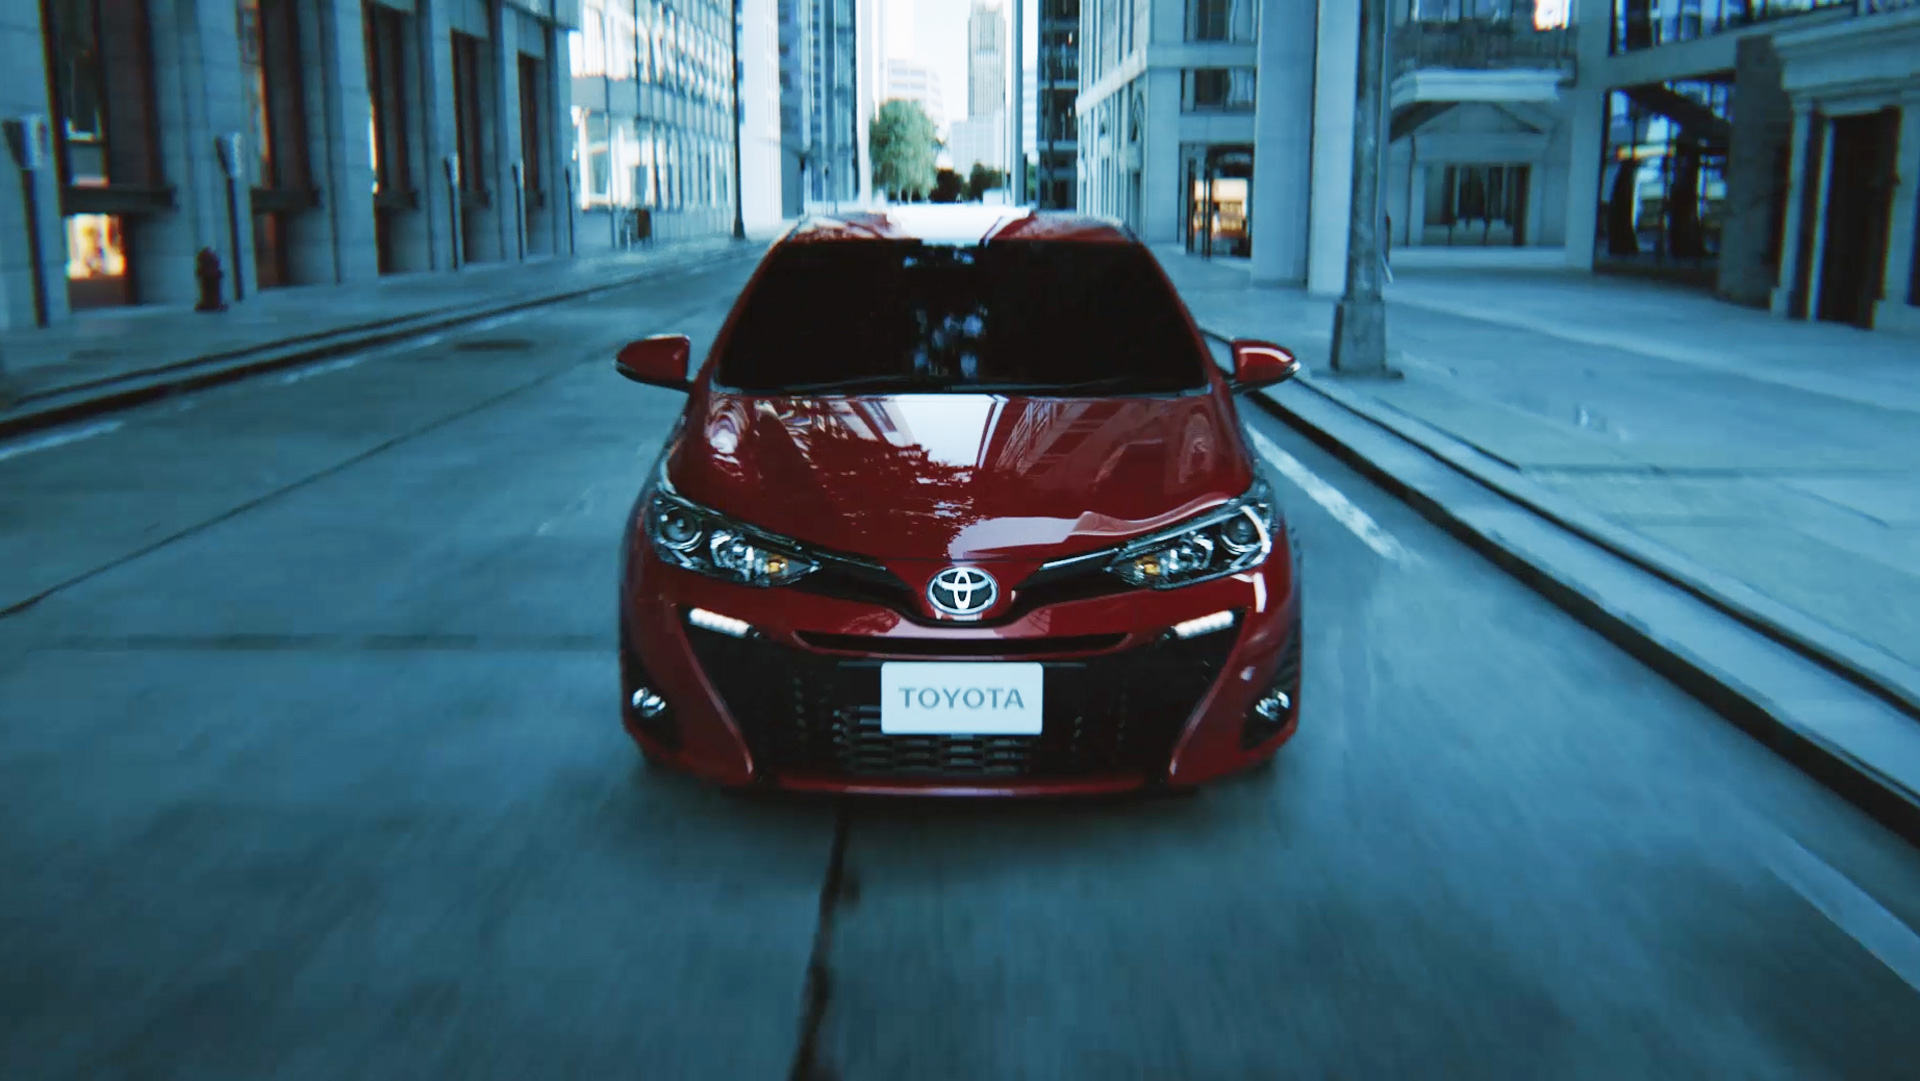 TOYOTA Yaris Hatchback Expand the future